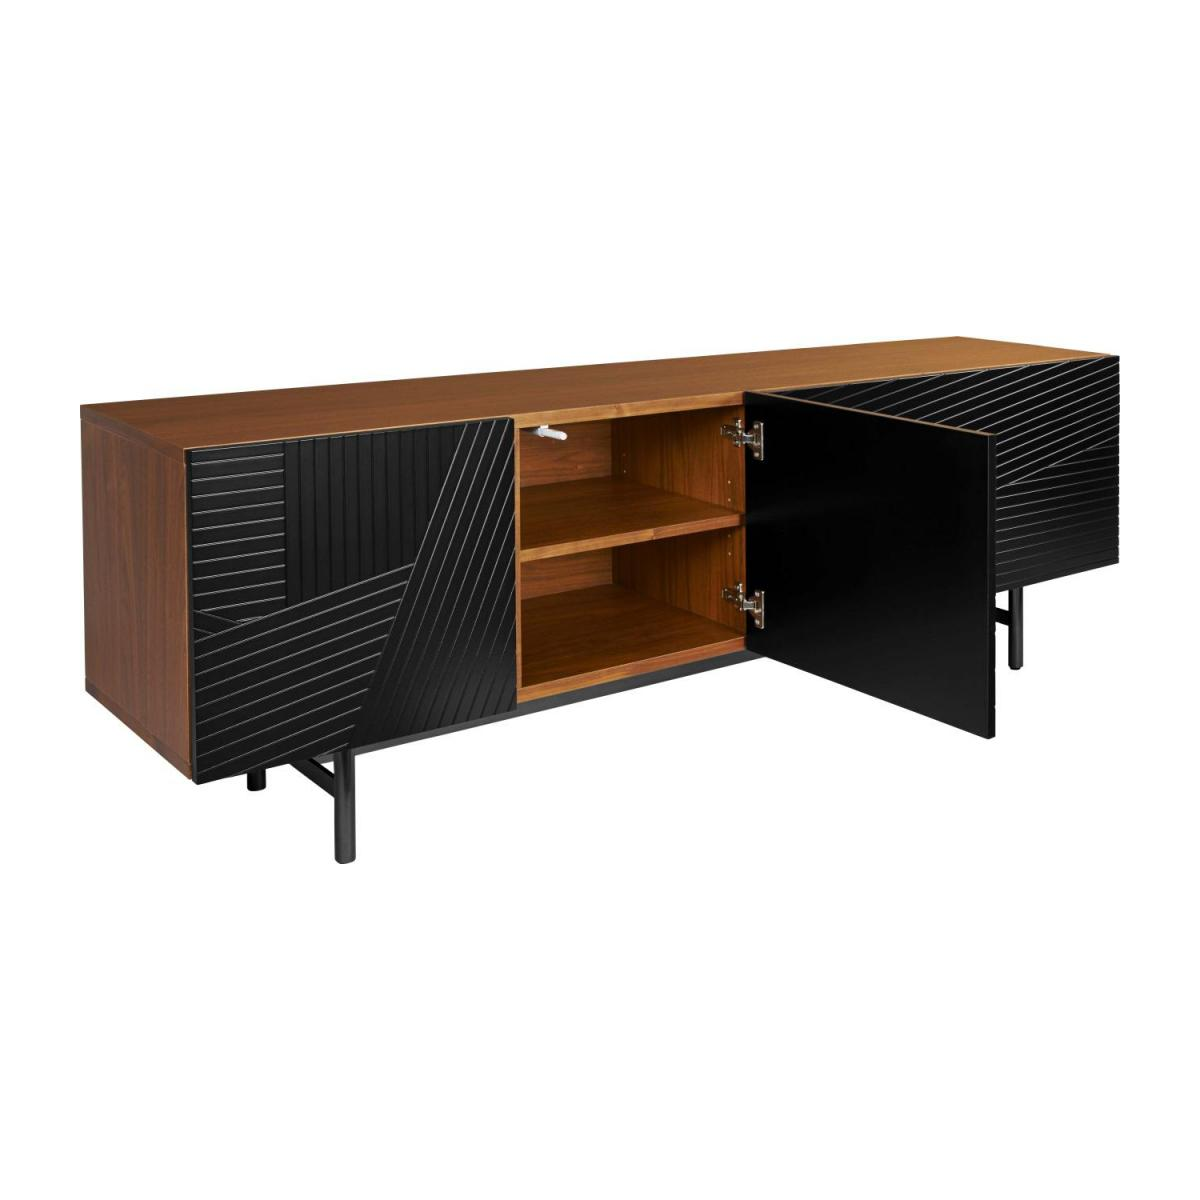 Low walnut sideboard n°3